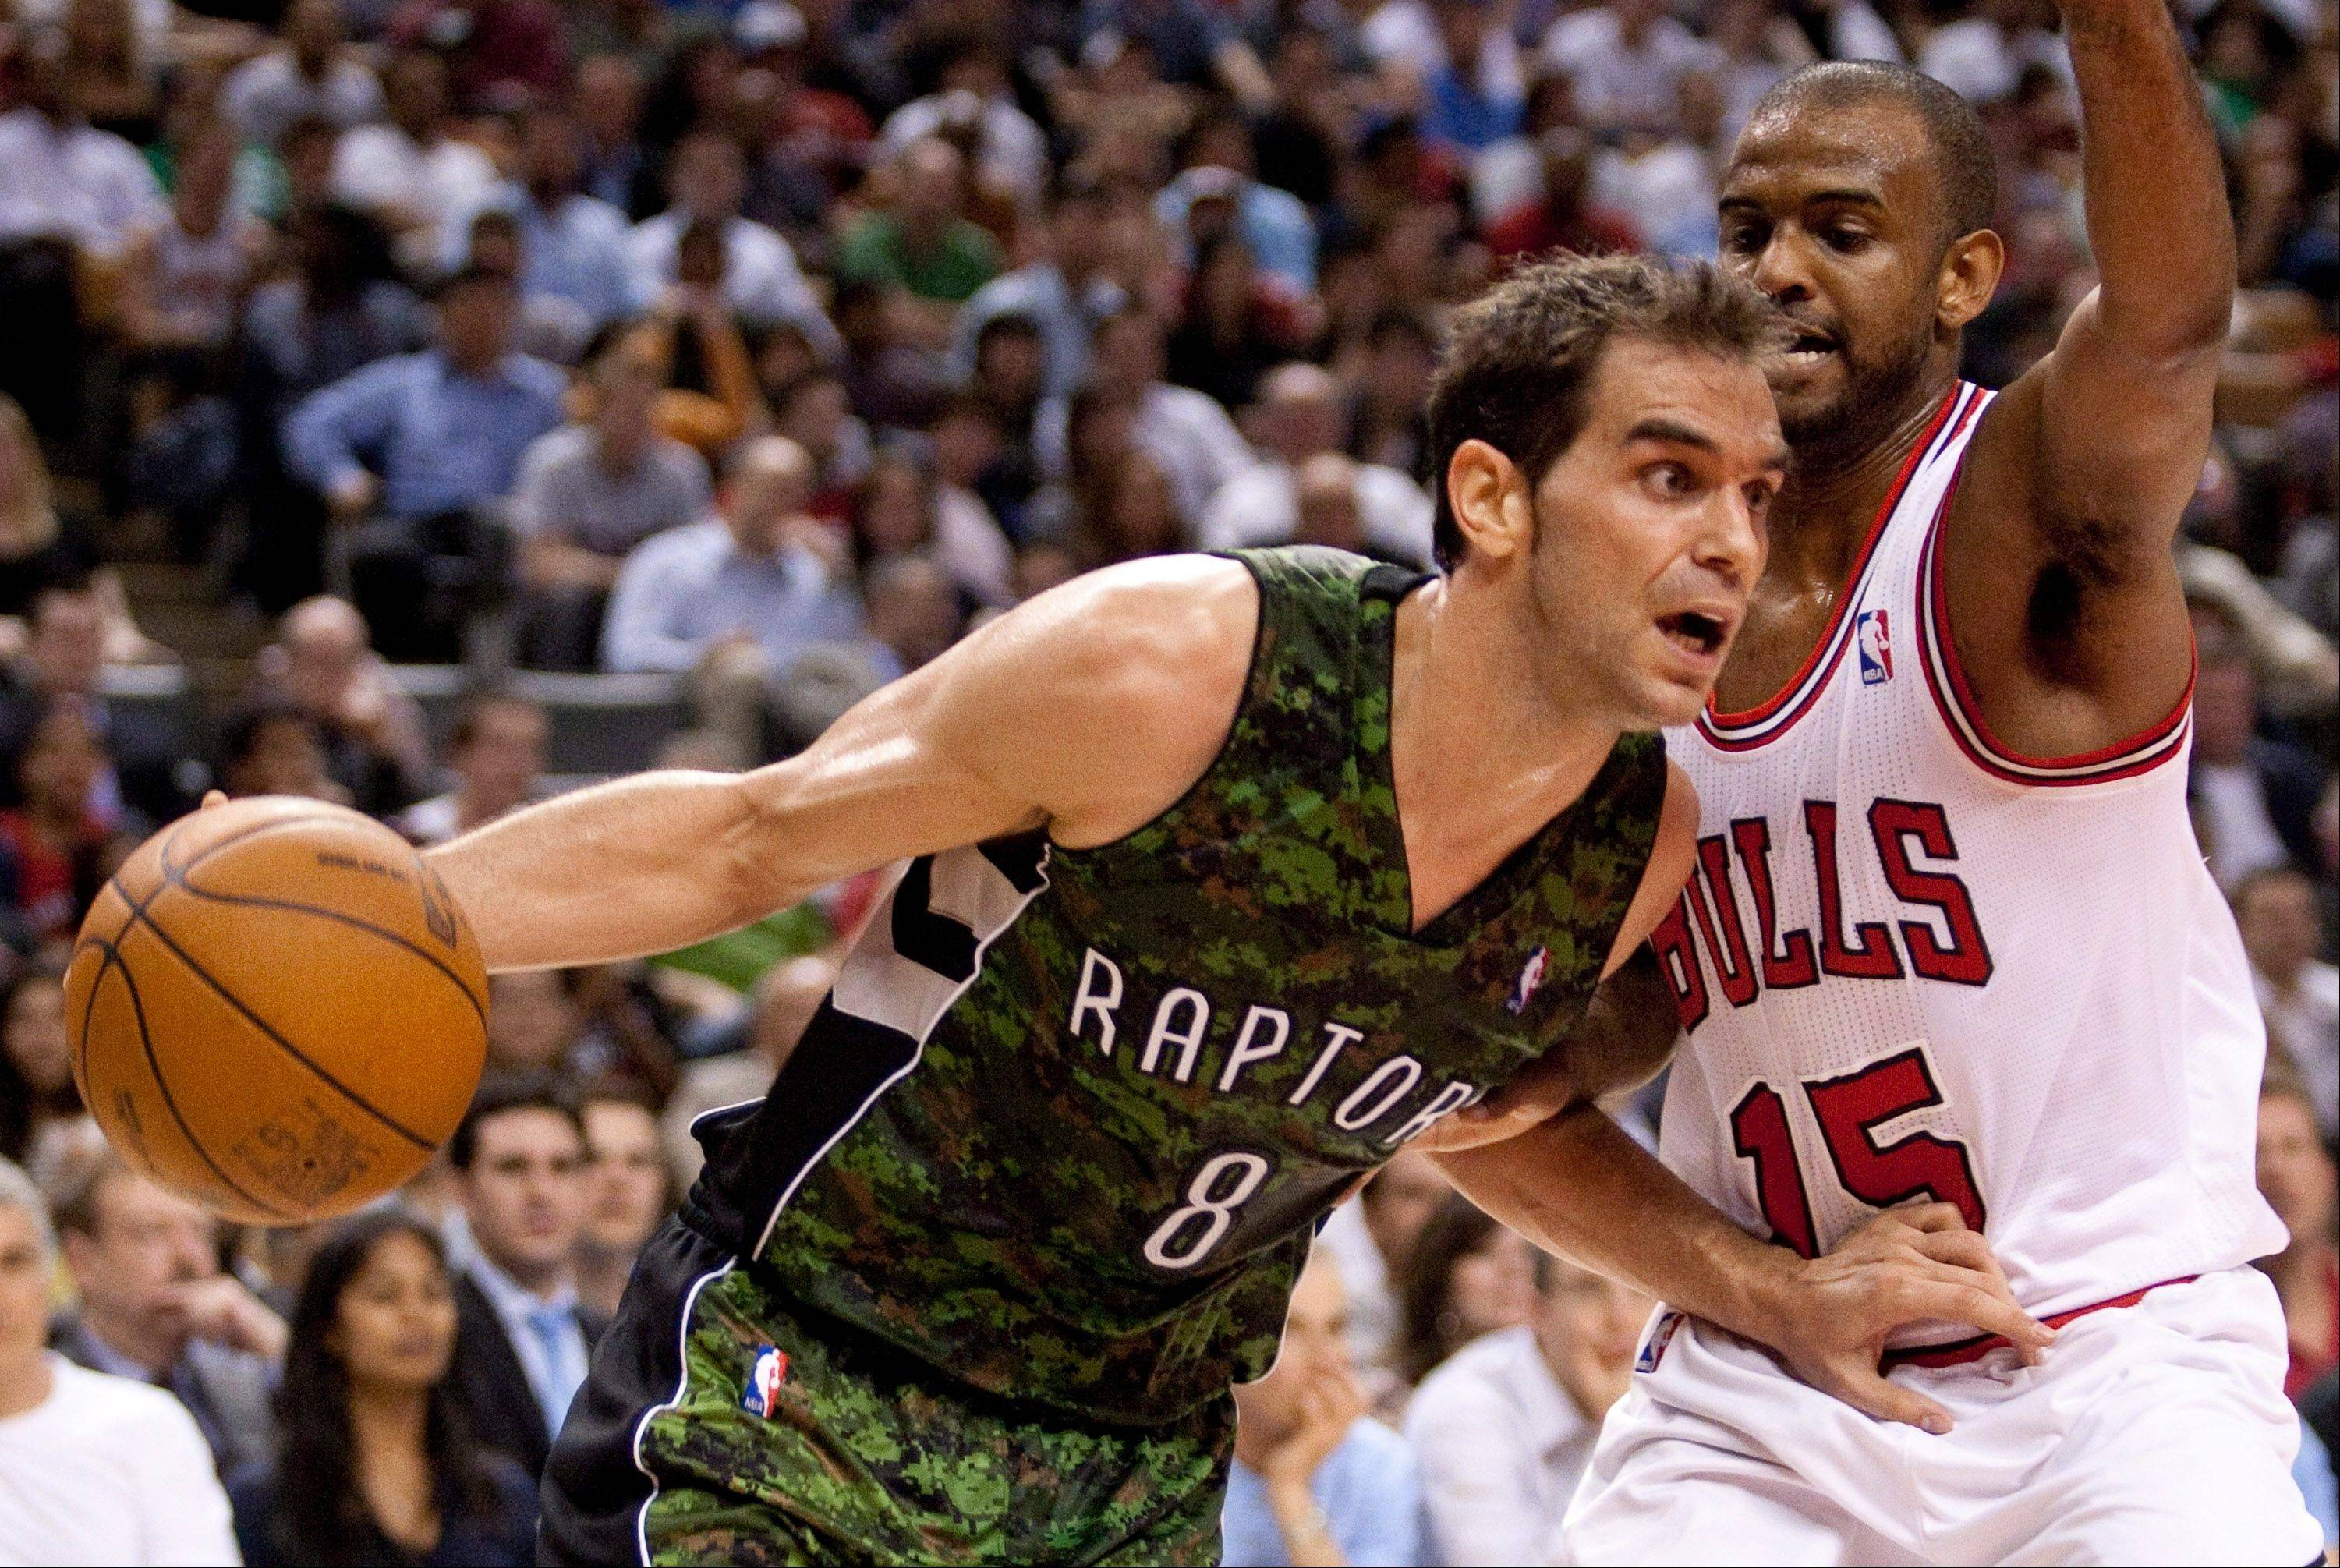 The Toronto Raptors' Jose Calderon, left, drives to the net past Bulls guard John Lucas III Wednesday during the second half.